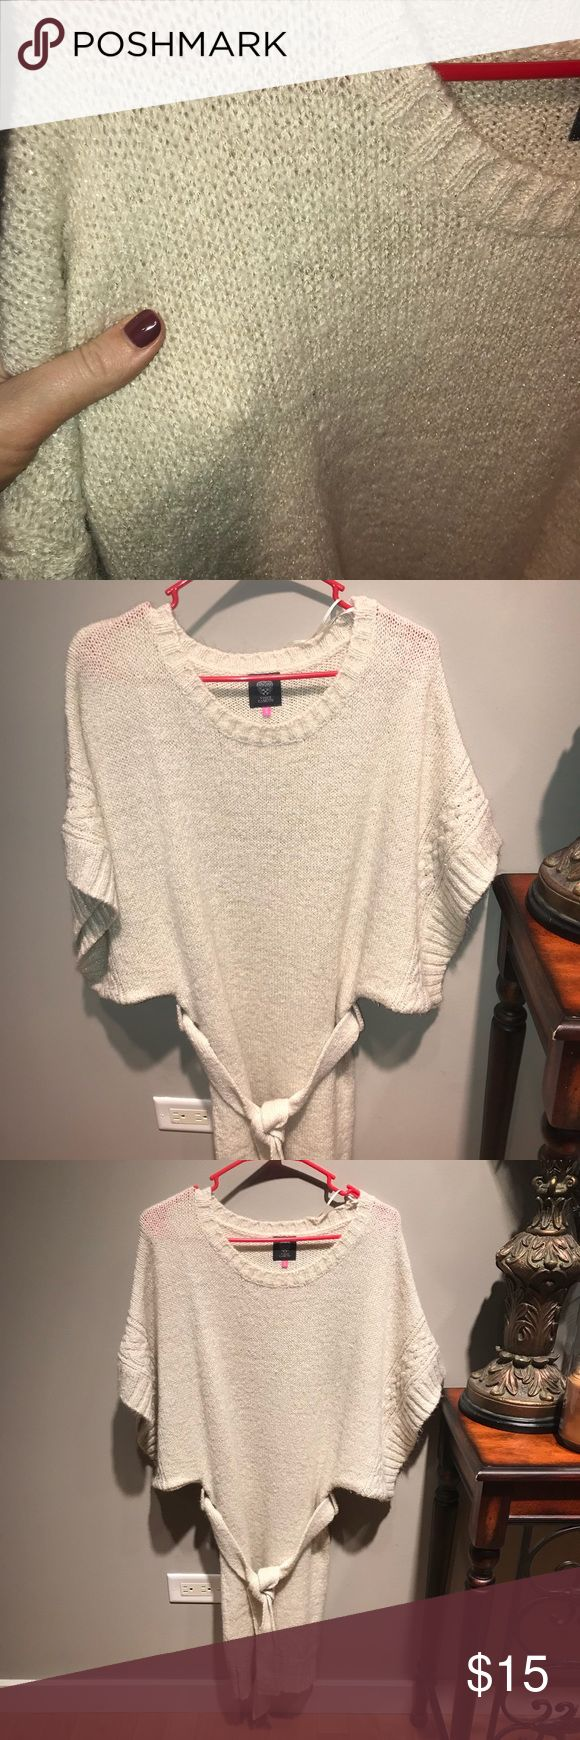 Vince Camuto Dolman Sleeve Sweater Dress Vince Camuto Dolman Sleeve Sweater Dress - only worn once/like new condition  -size small -nude/beige with subtle gold accents - belted  -Perfect with leggings and boots! Vince Camuto Dresses